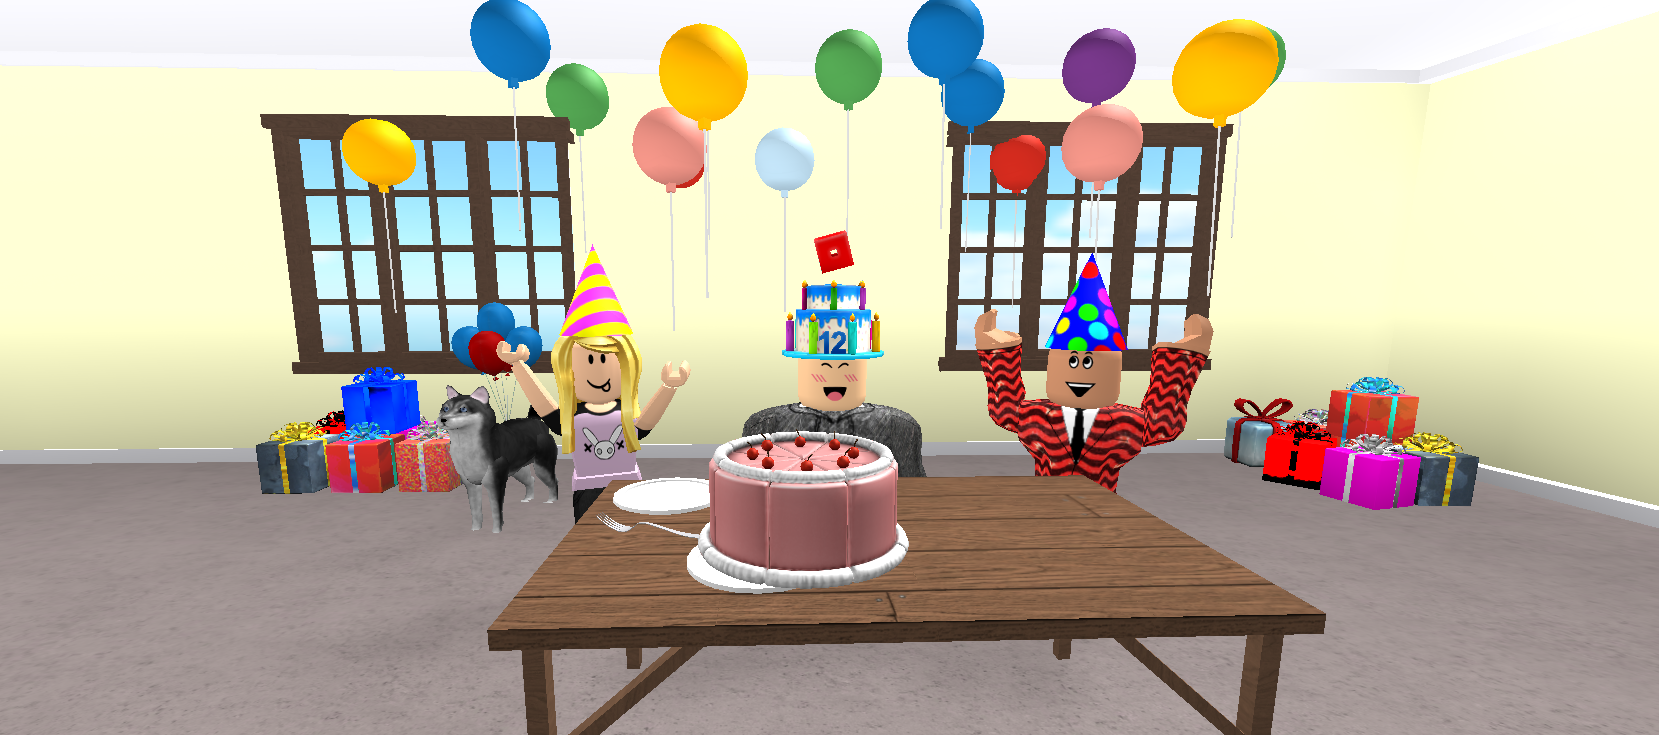 12 birthday cake twelve candles clipart clipart library stock Happy 12th Birthday, Roblox! - Roblox Blog clipart library stock